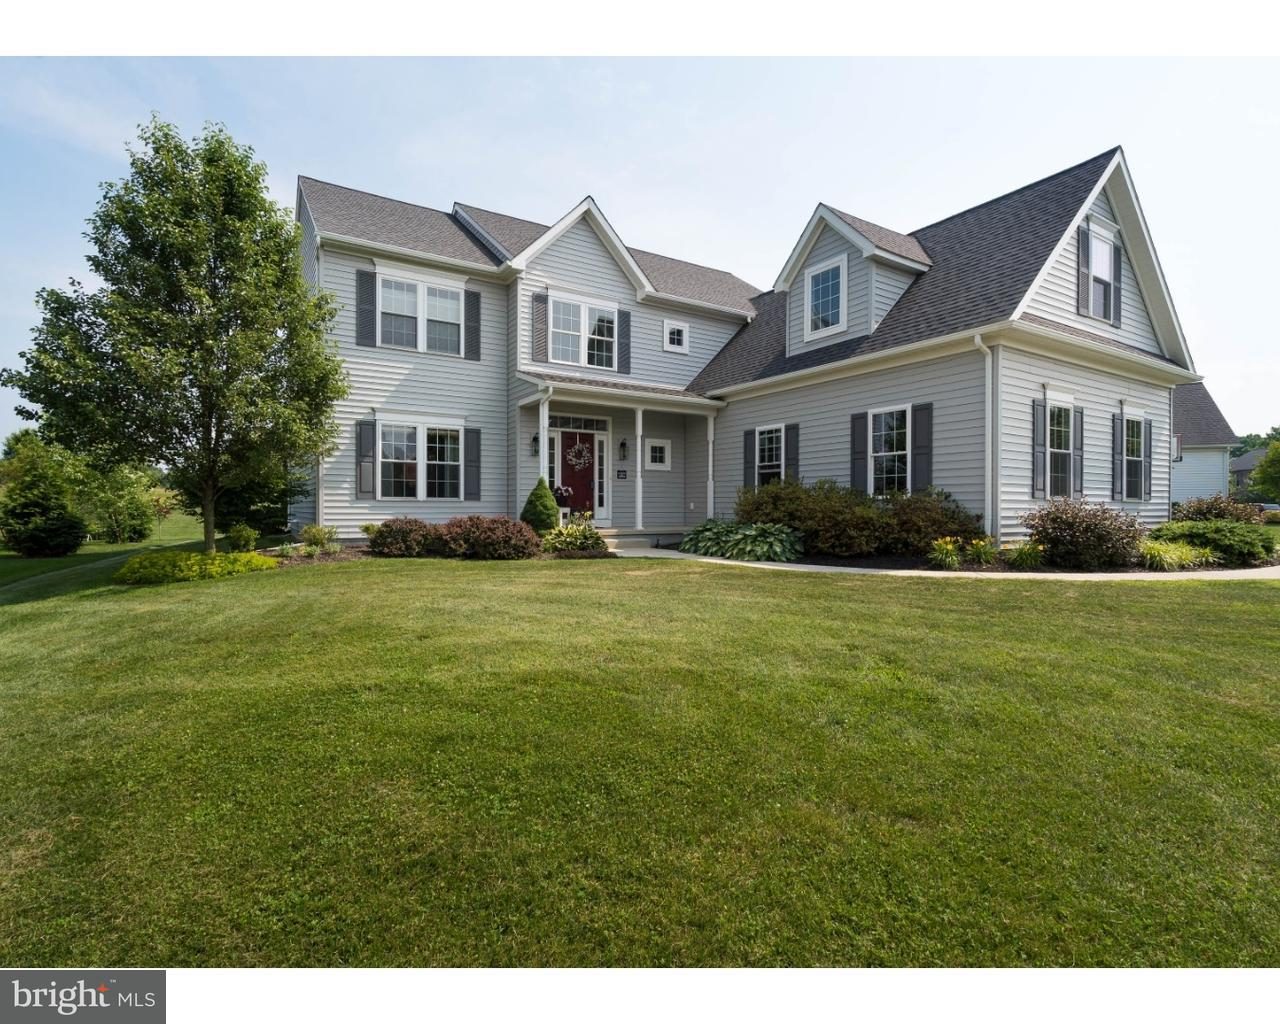 240 MILLHOUSE DR, LINCOLN UNIVERSITY - Listed at $432,900, LINCOLN UNIVERSITY